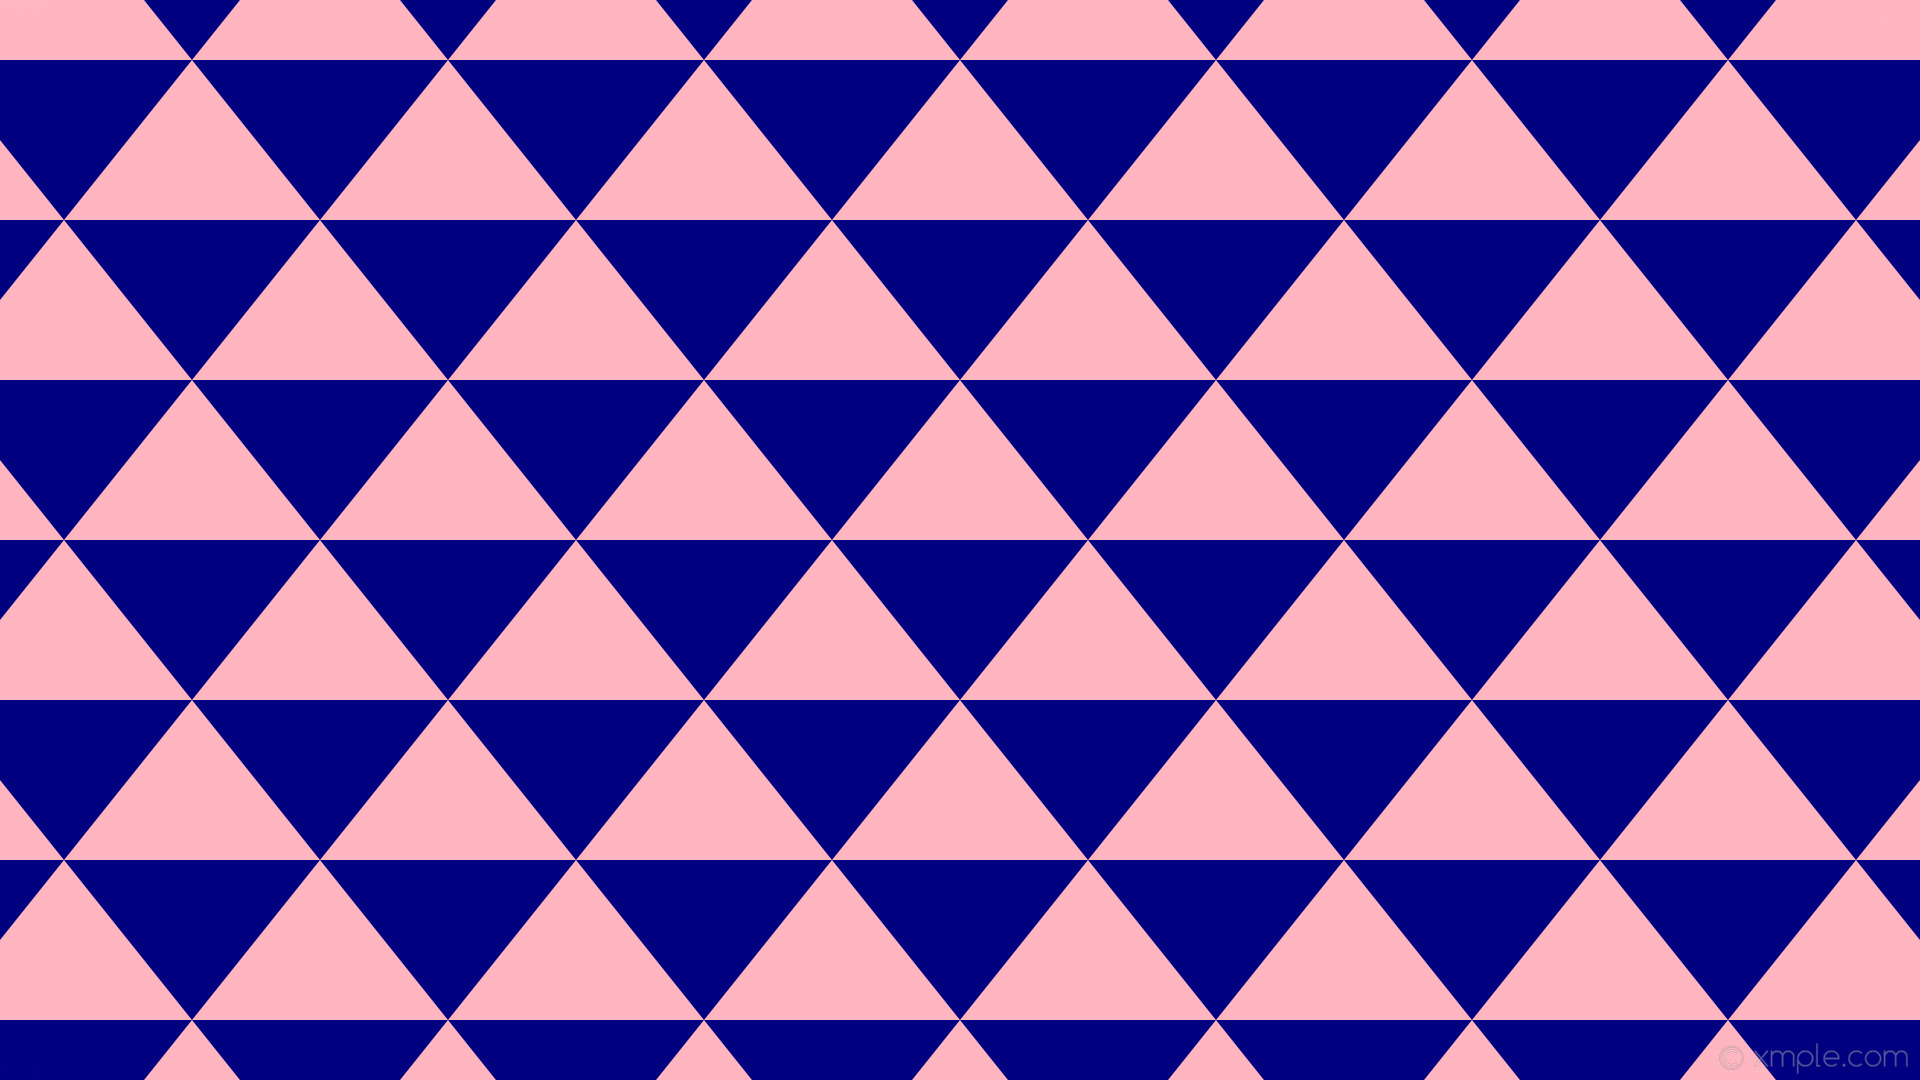 1920x1080 wallpaper blue triangle pink light pink navy #ffb6c1 #000080 180° 256px  320px